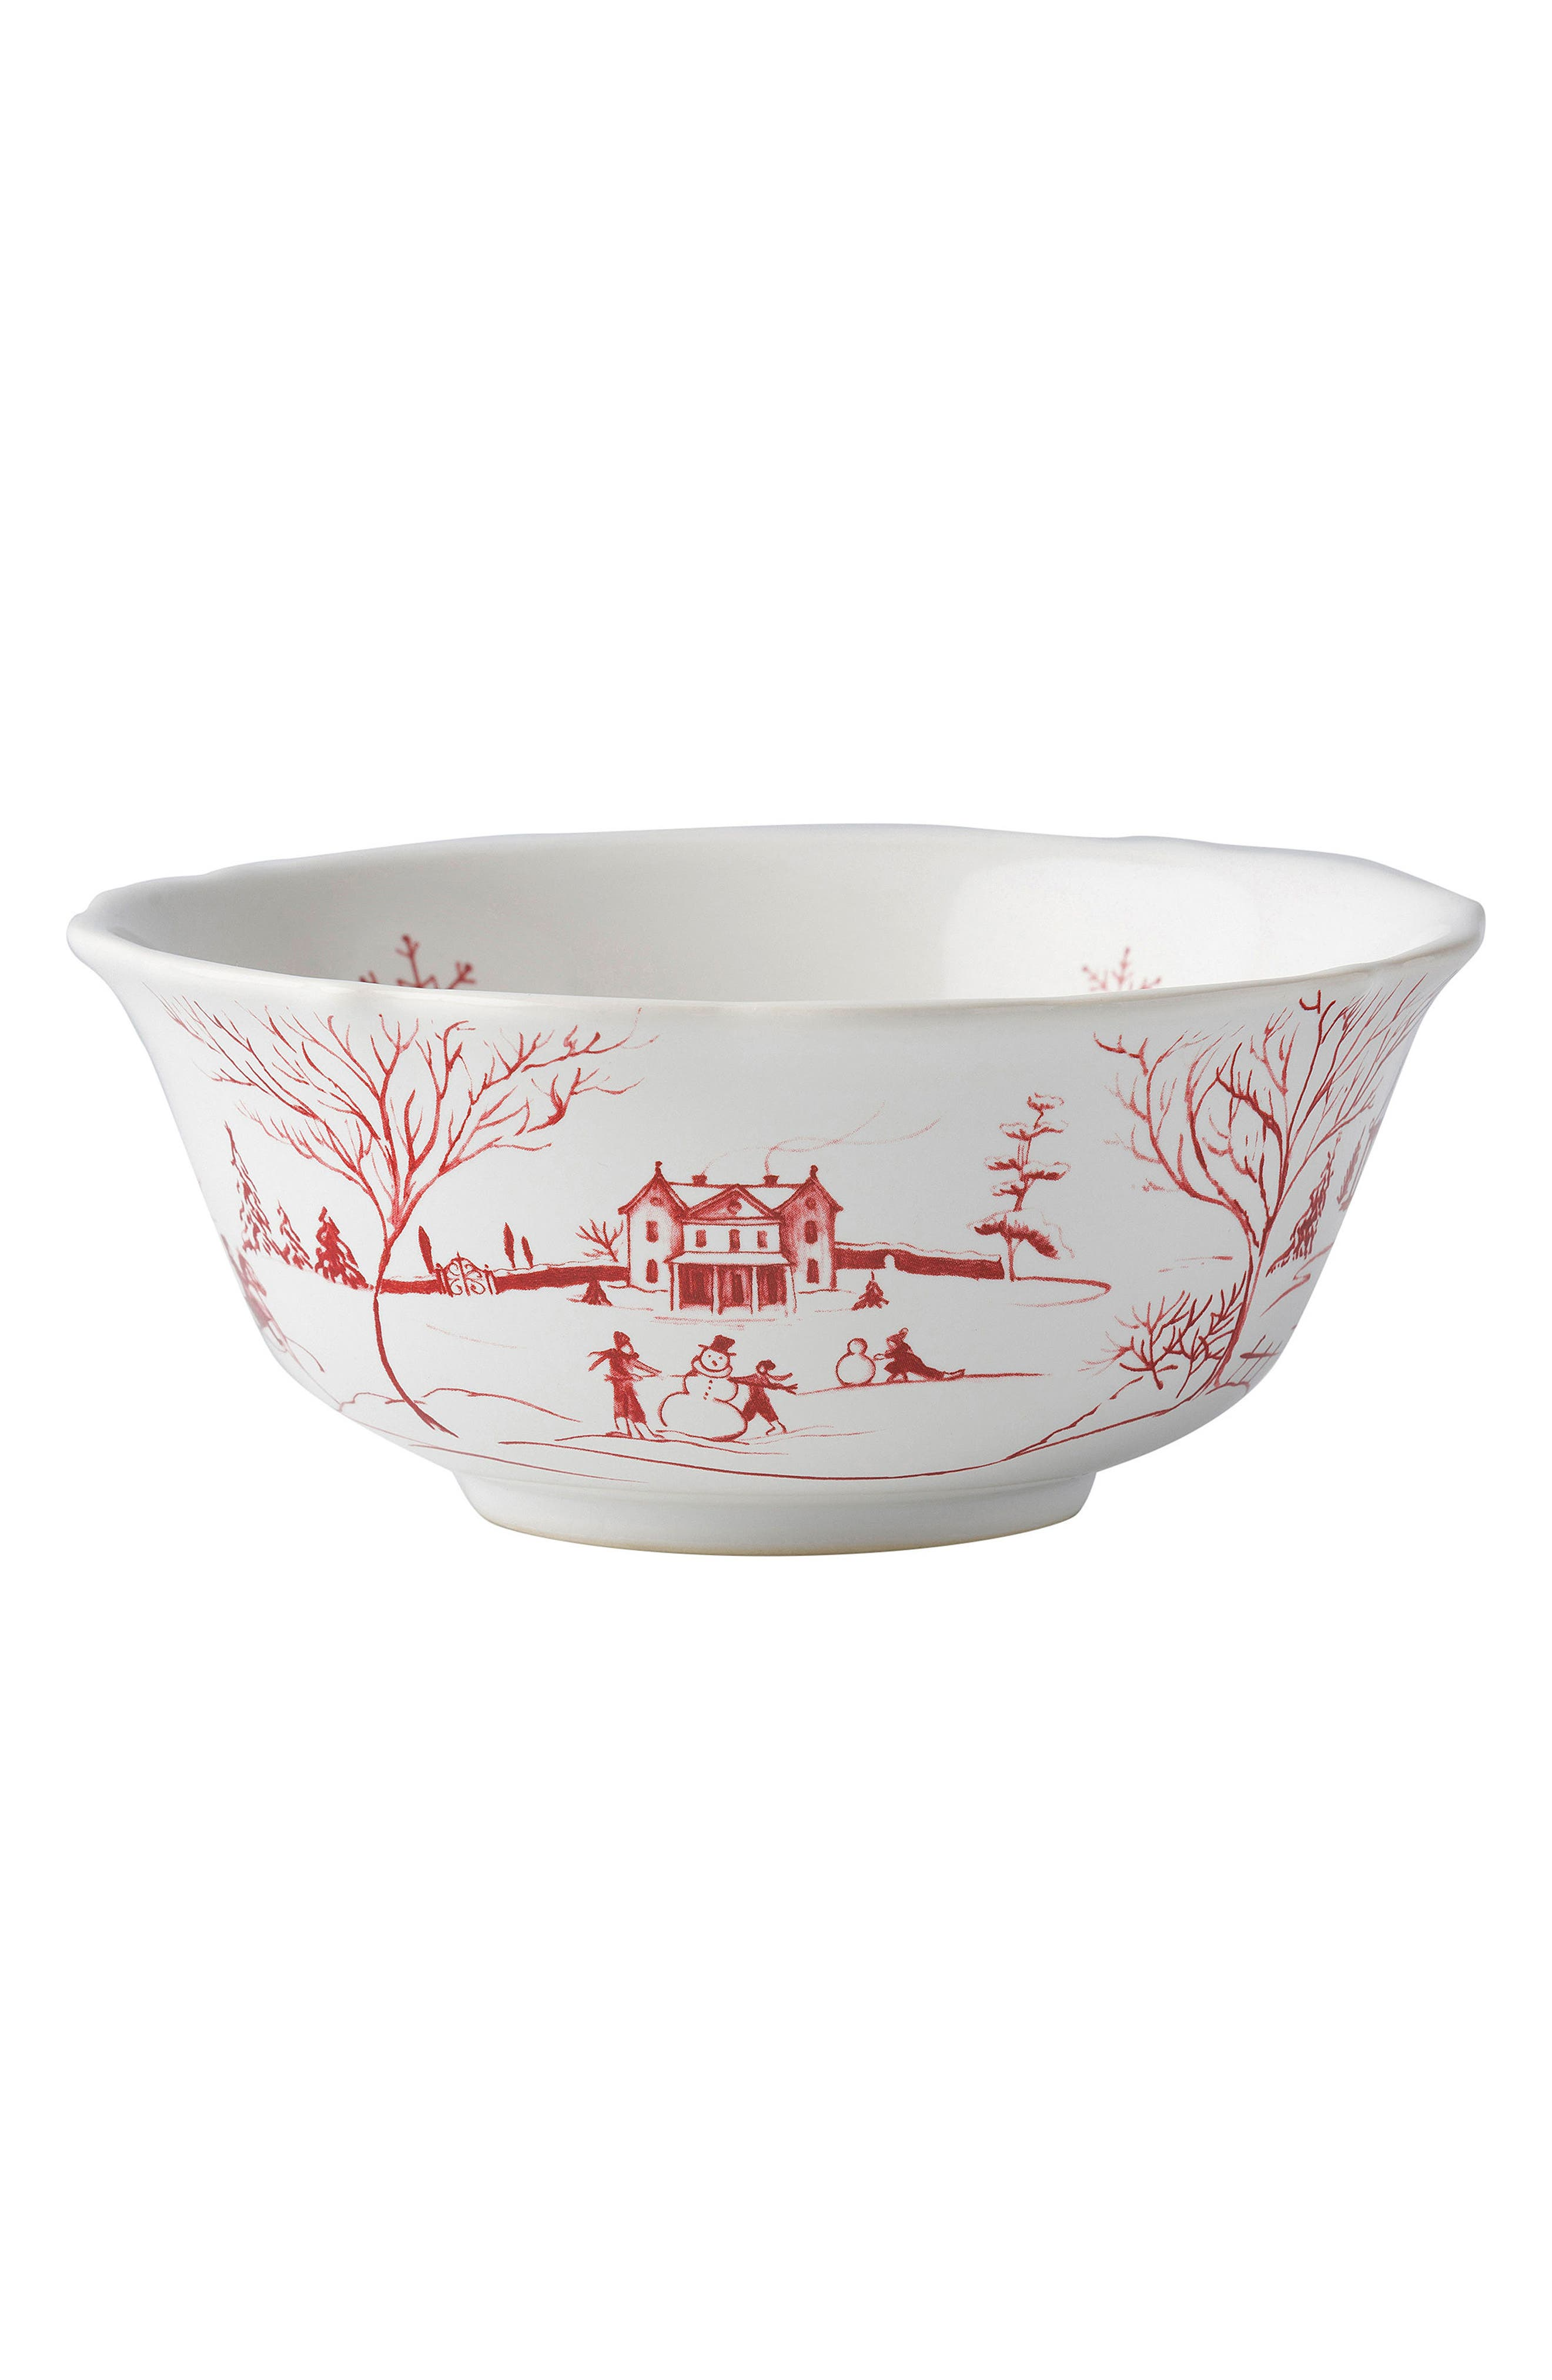 Winter Frolic Ceramic Cereal Bowl,                             Alternate thumbnail 2, color,                             Ruby